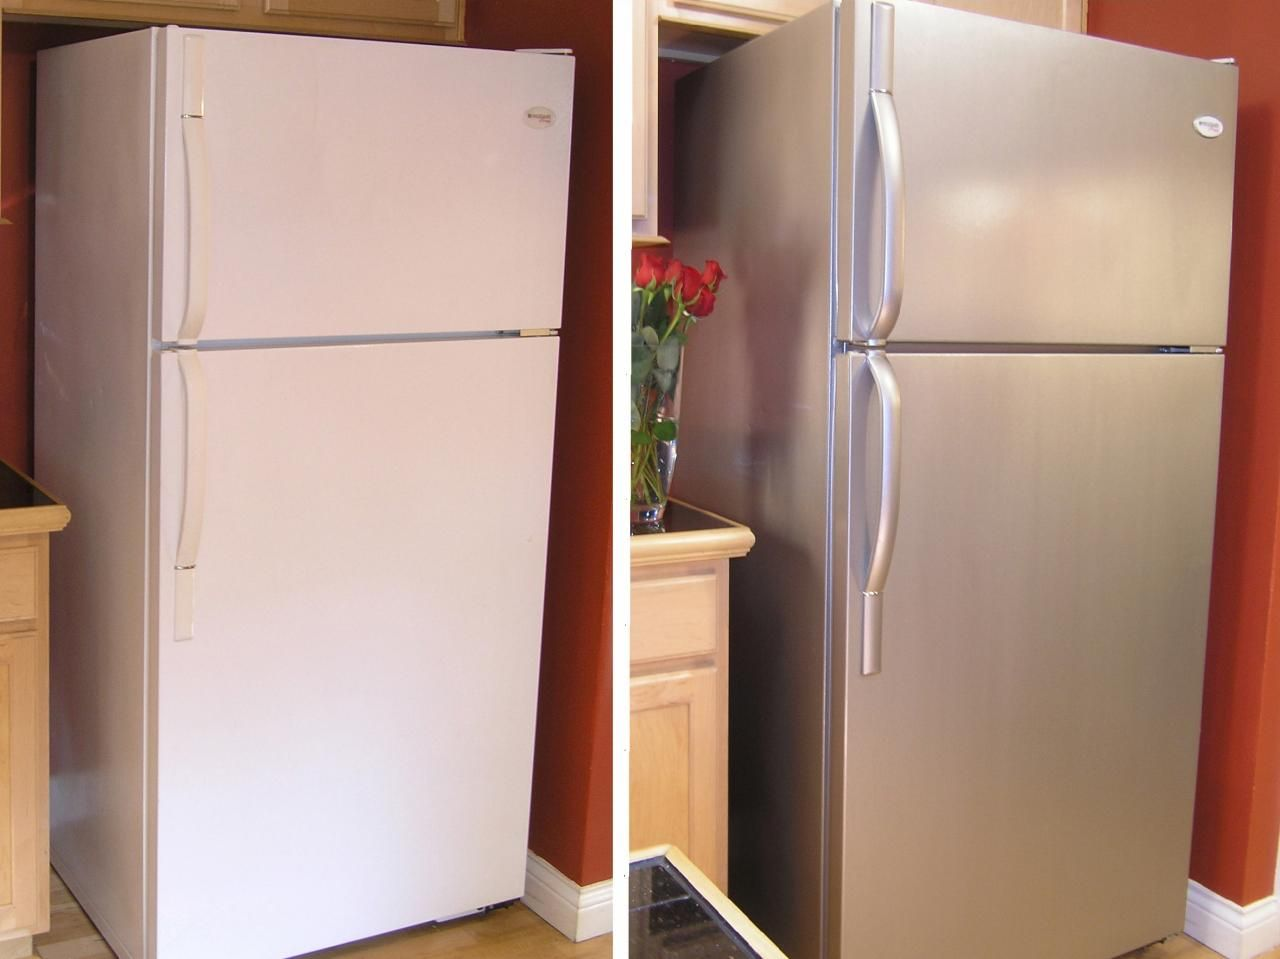 Stainless Steel Paint for appliances (and maybe countertop